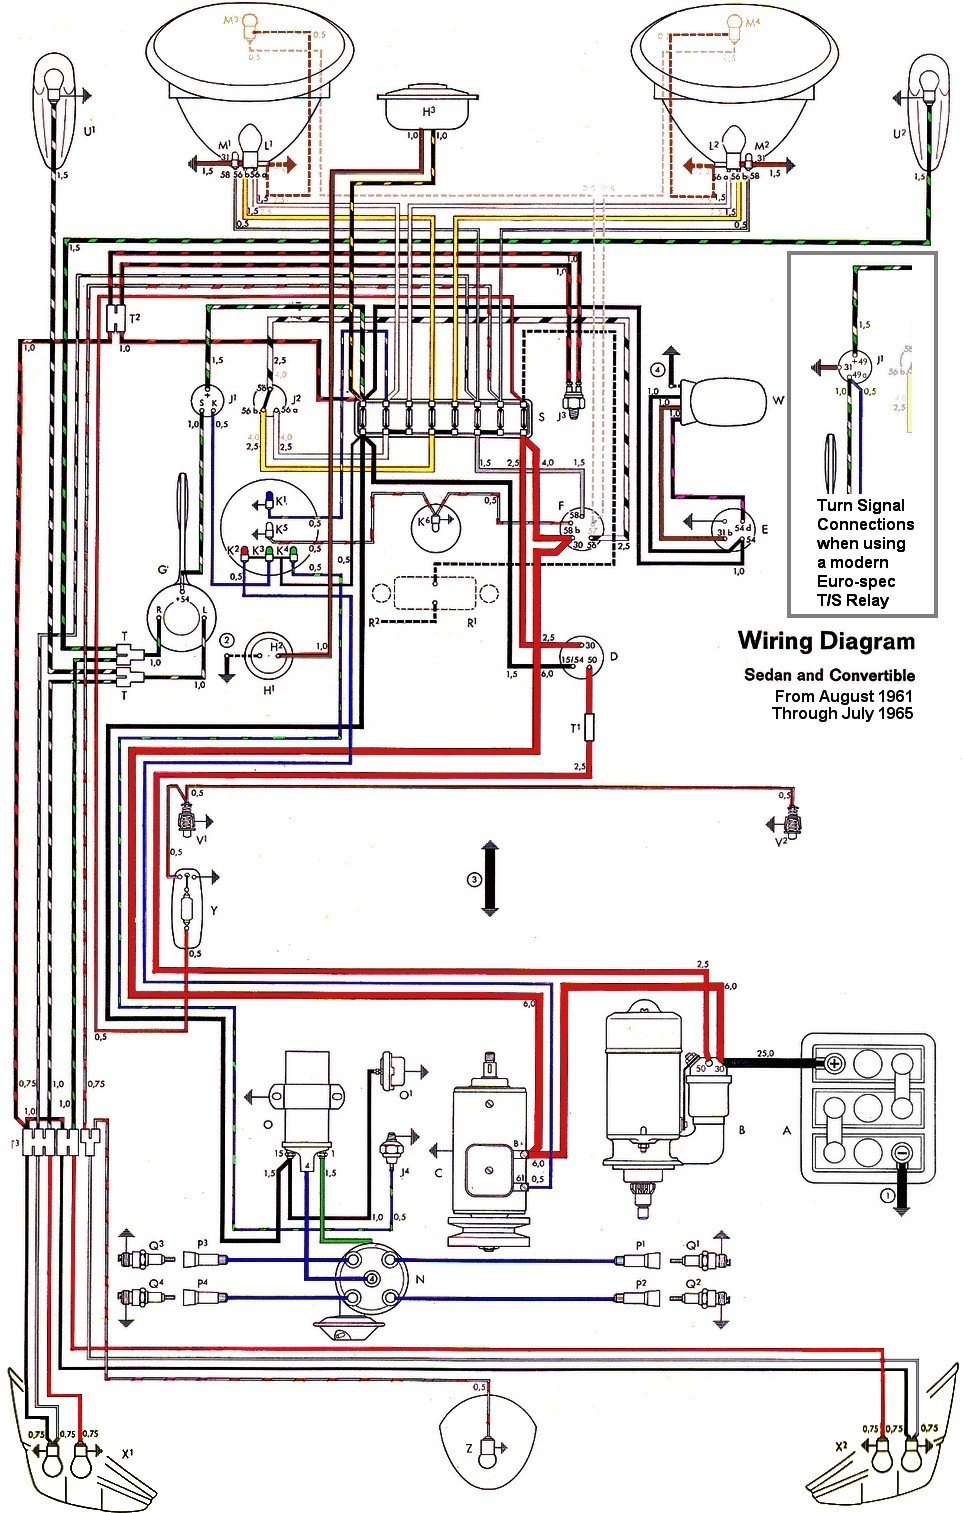 Wire Harness Diagram 1972 Vw Bug Great Installation Of Wiring Volkswagen For 72 Thesamba Com Type 1 Diagrams Rh 1970 Parts